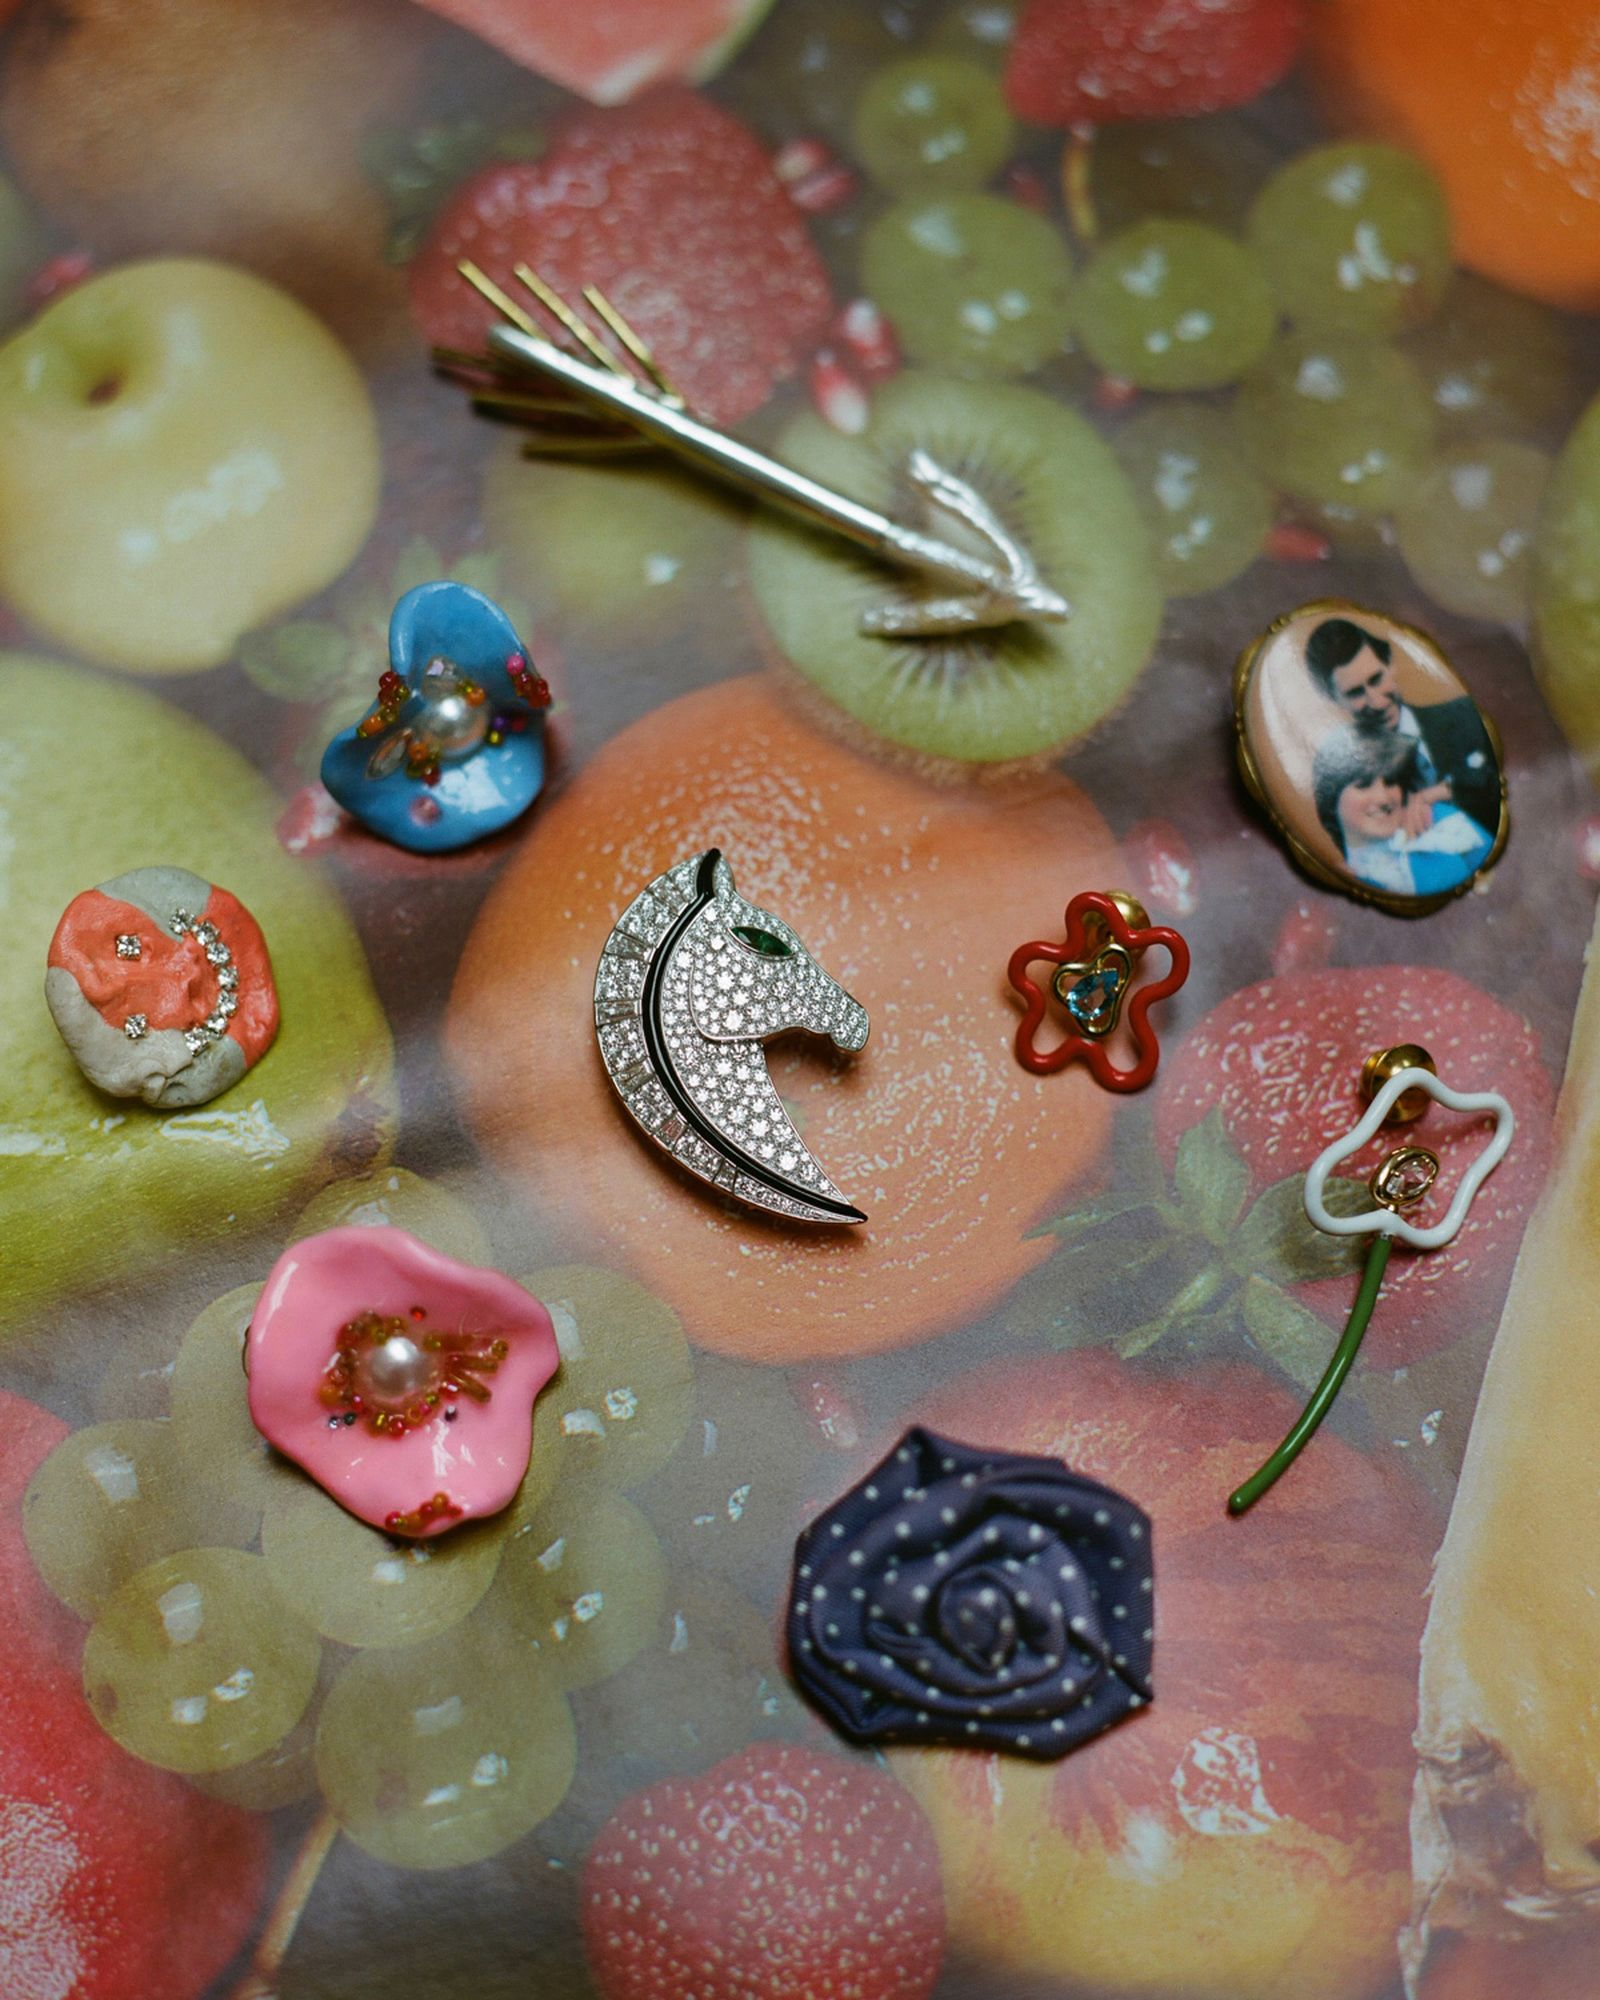 Arrow brooch EMILY FRANCES BARRETT, Cameo brooch CONTEMPORARY WARDROBE, Blue flower earring BLOBB, Smiley brooch CORRINA GOUTOS, Horse brooch BVLGARI, Red floral pin with blue stone BEA BONGIASCA, White and green enamel floral pin BEA BONGIASCA, Pink flower earring BLOBB, Silk floral pin CHARVET